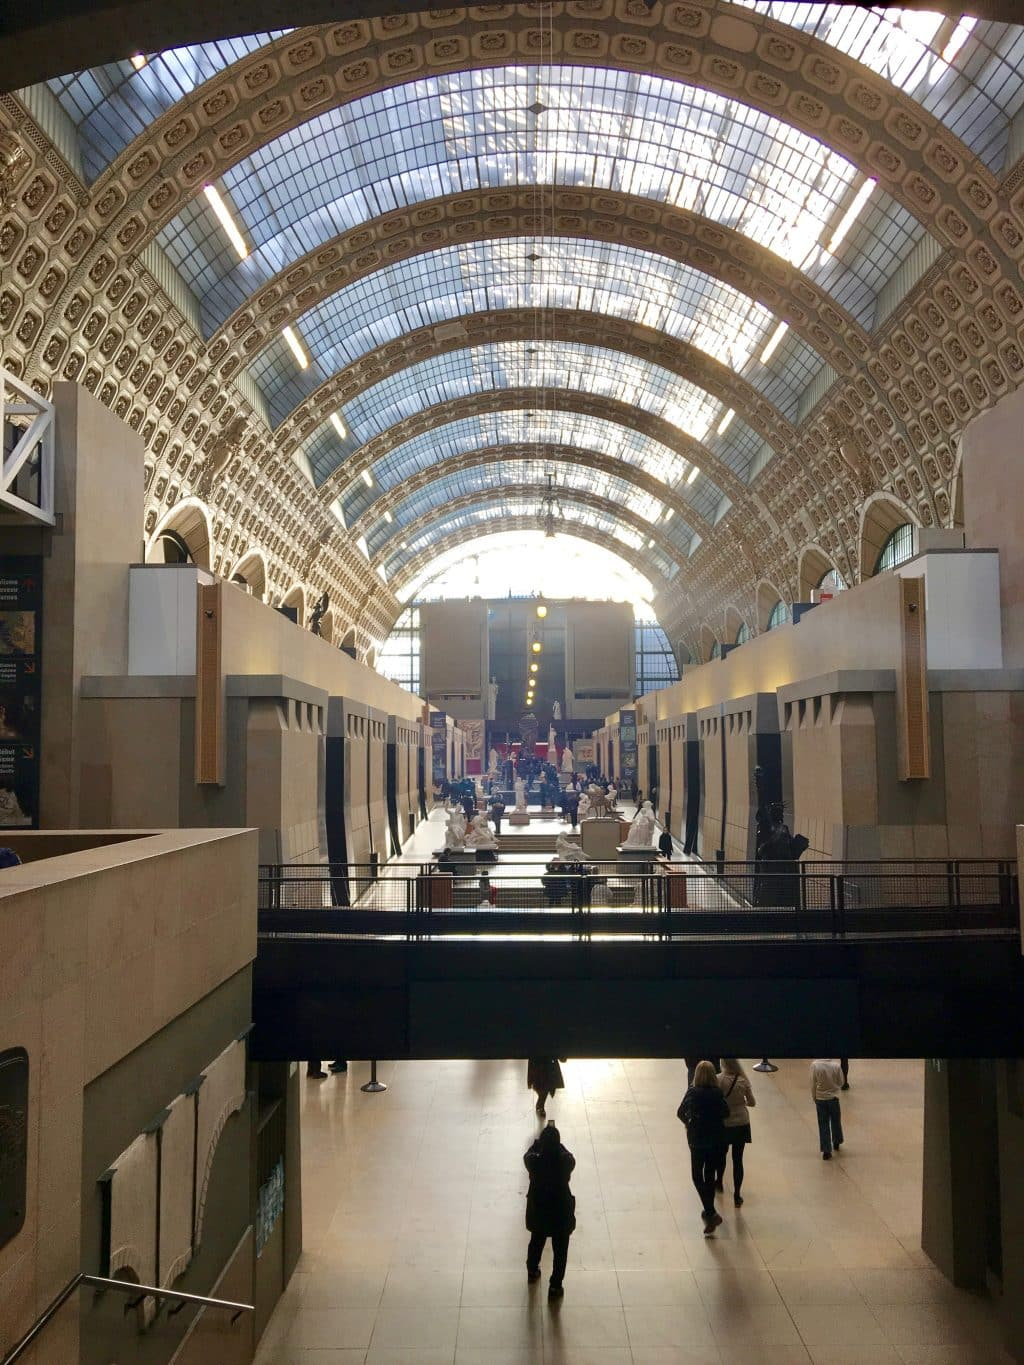 The view inside of the Musée d'Orsay